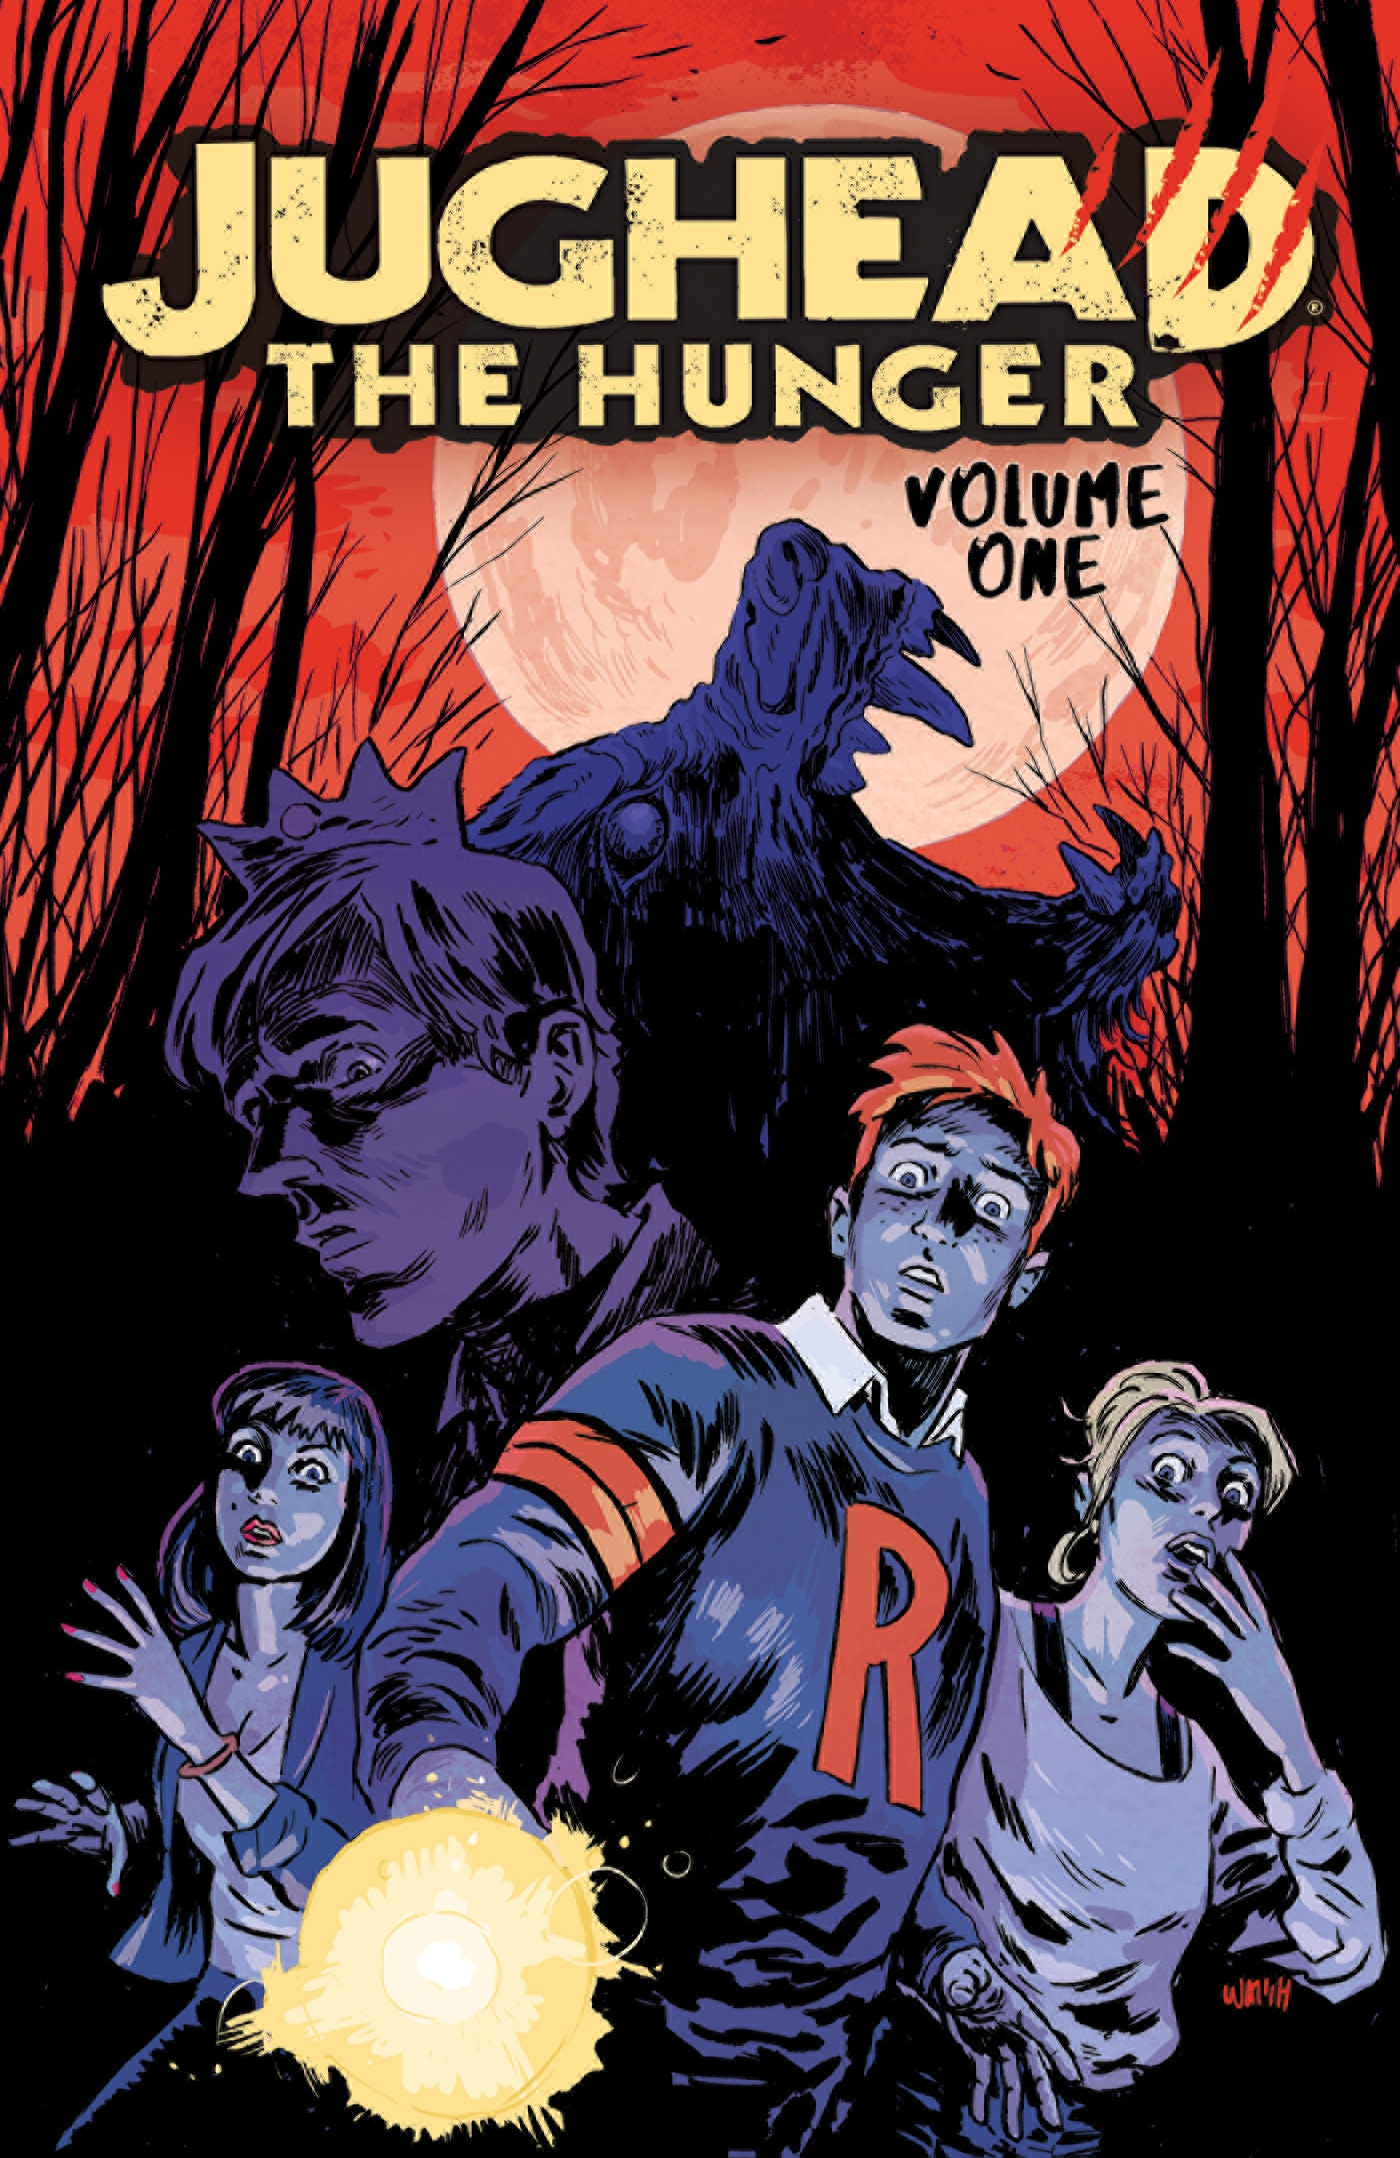 Jughead: The Hunger Vol. 1 (Judhead the Hunger)